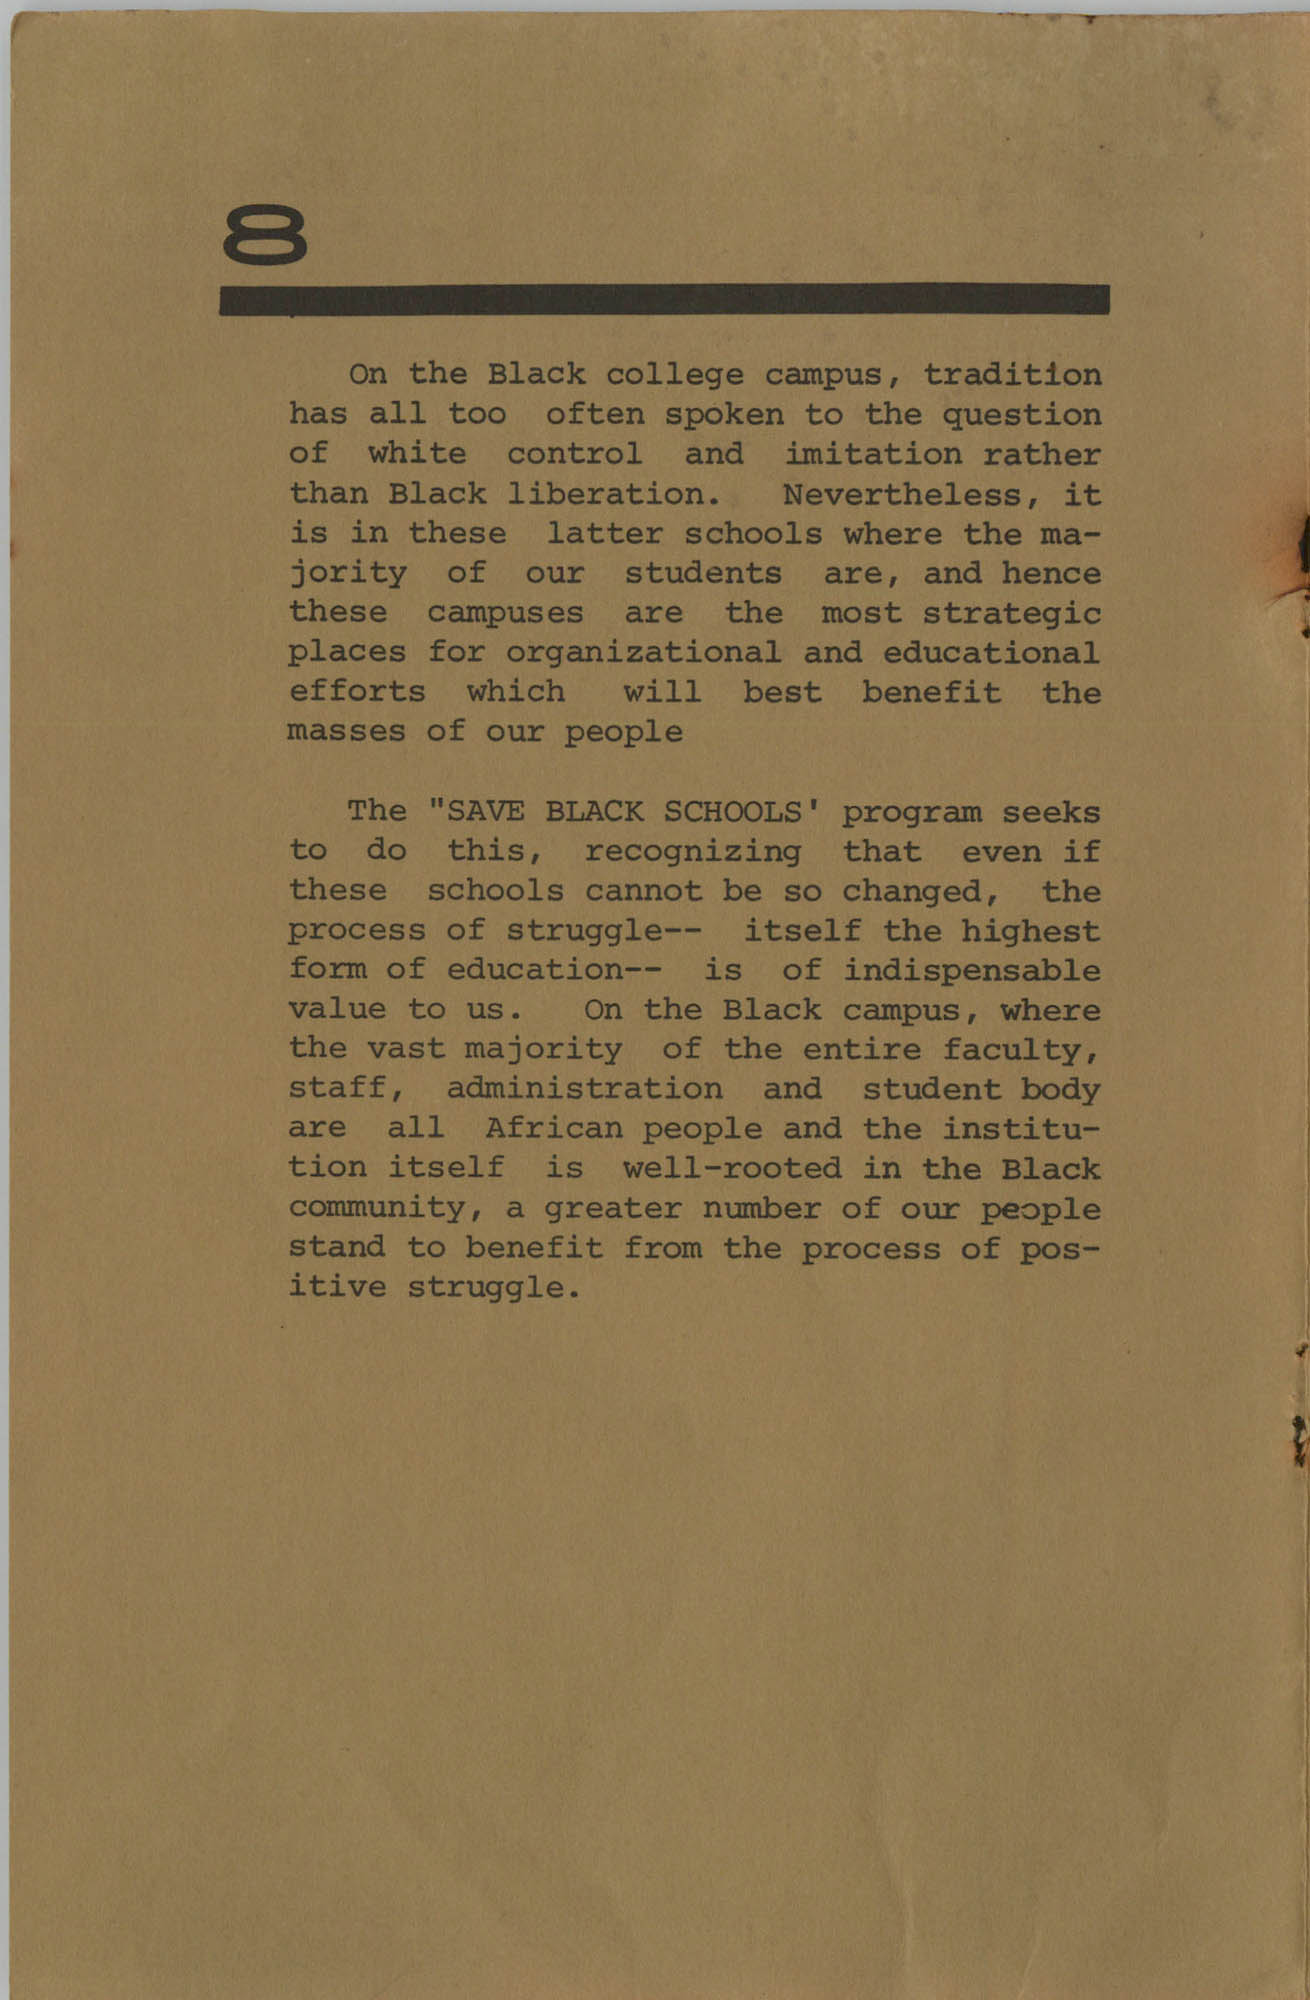 Work for African Liberation, Page 8